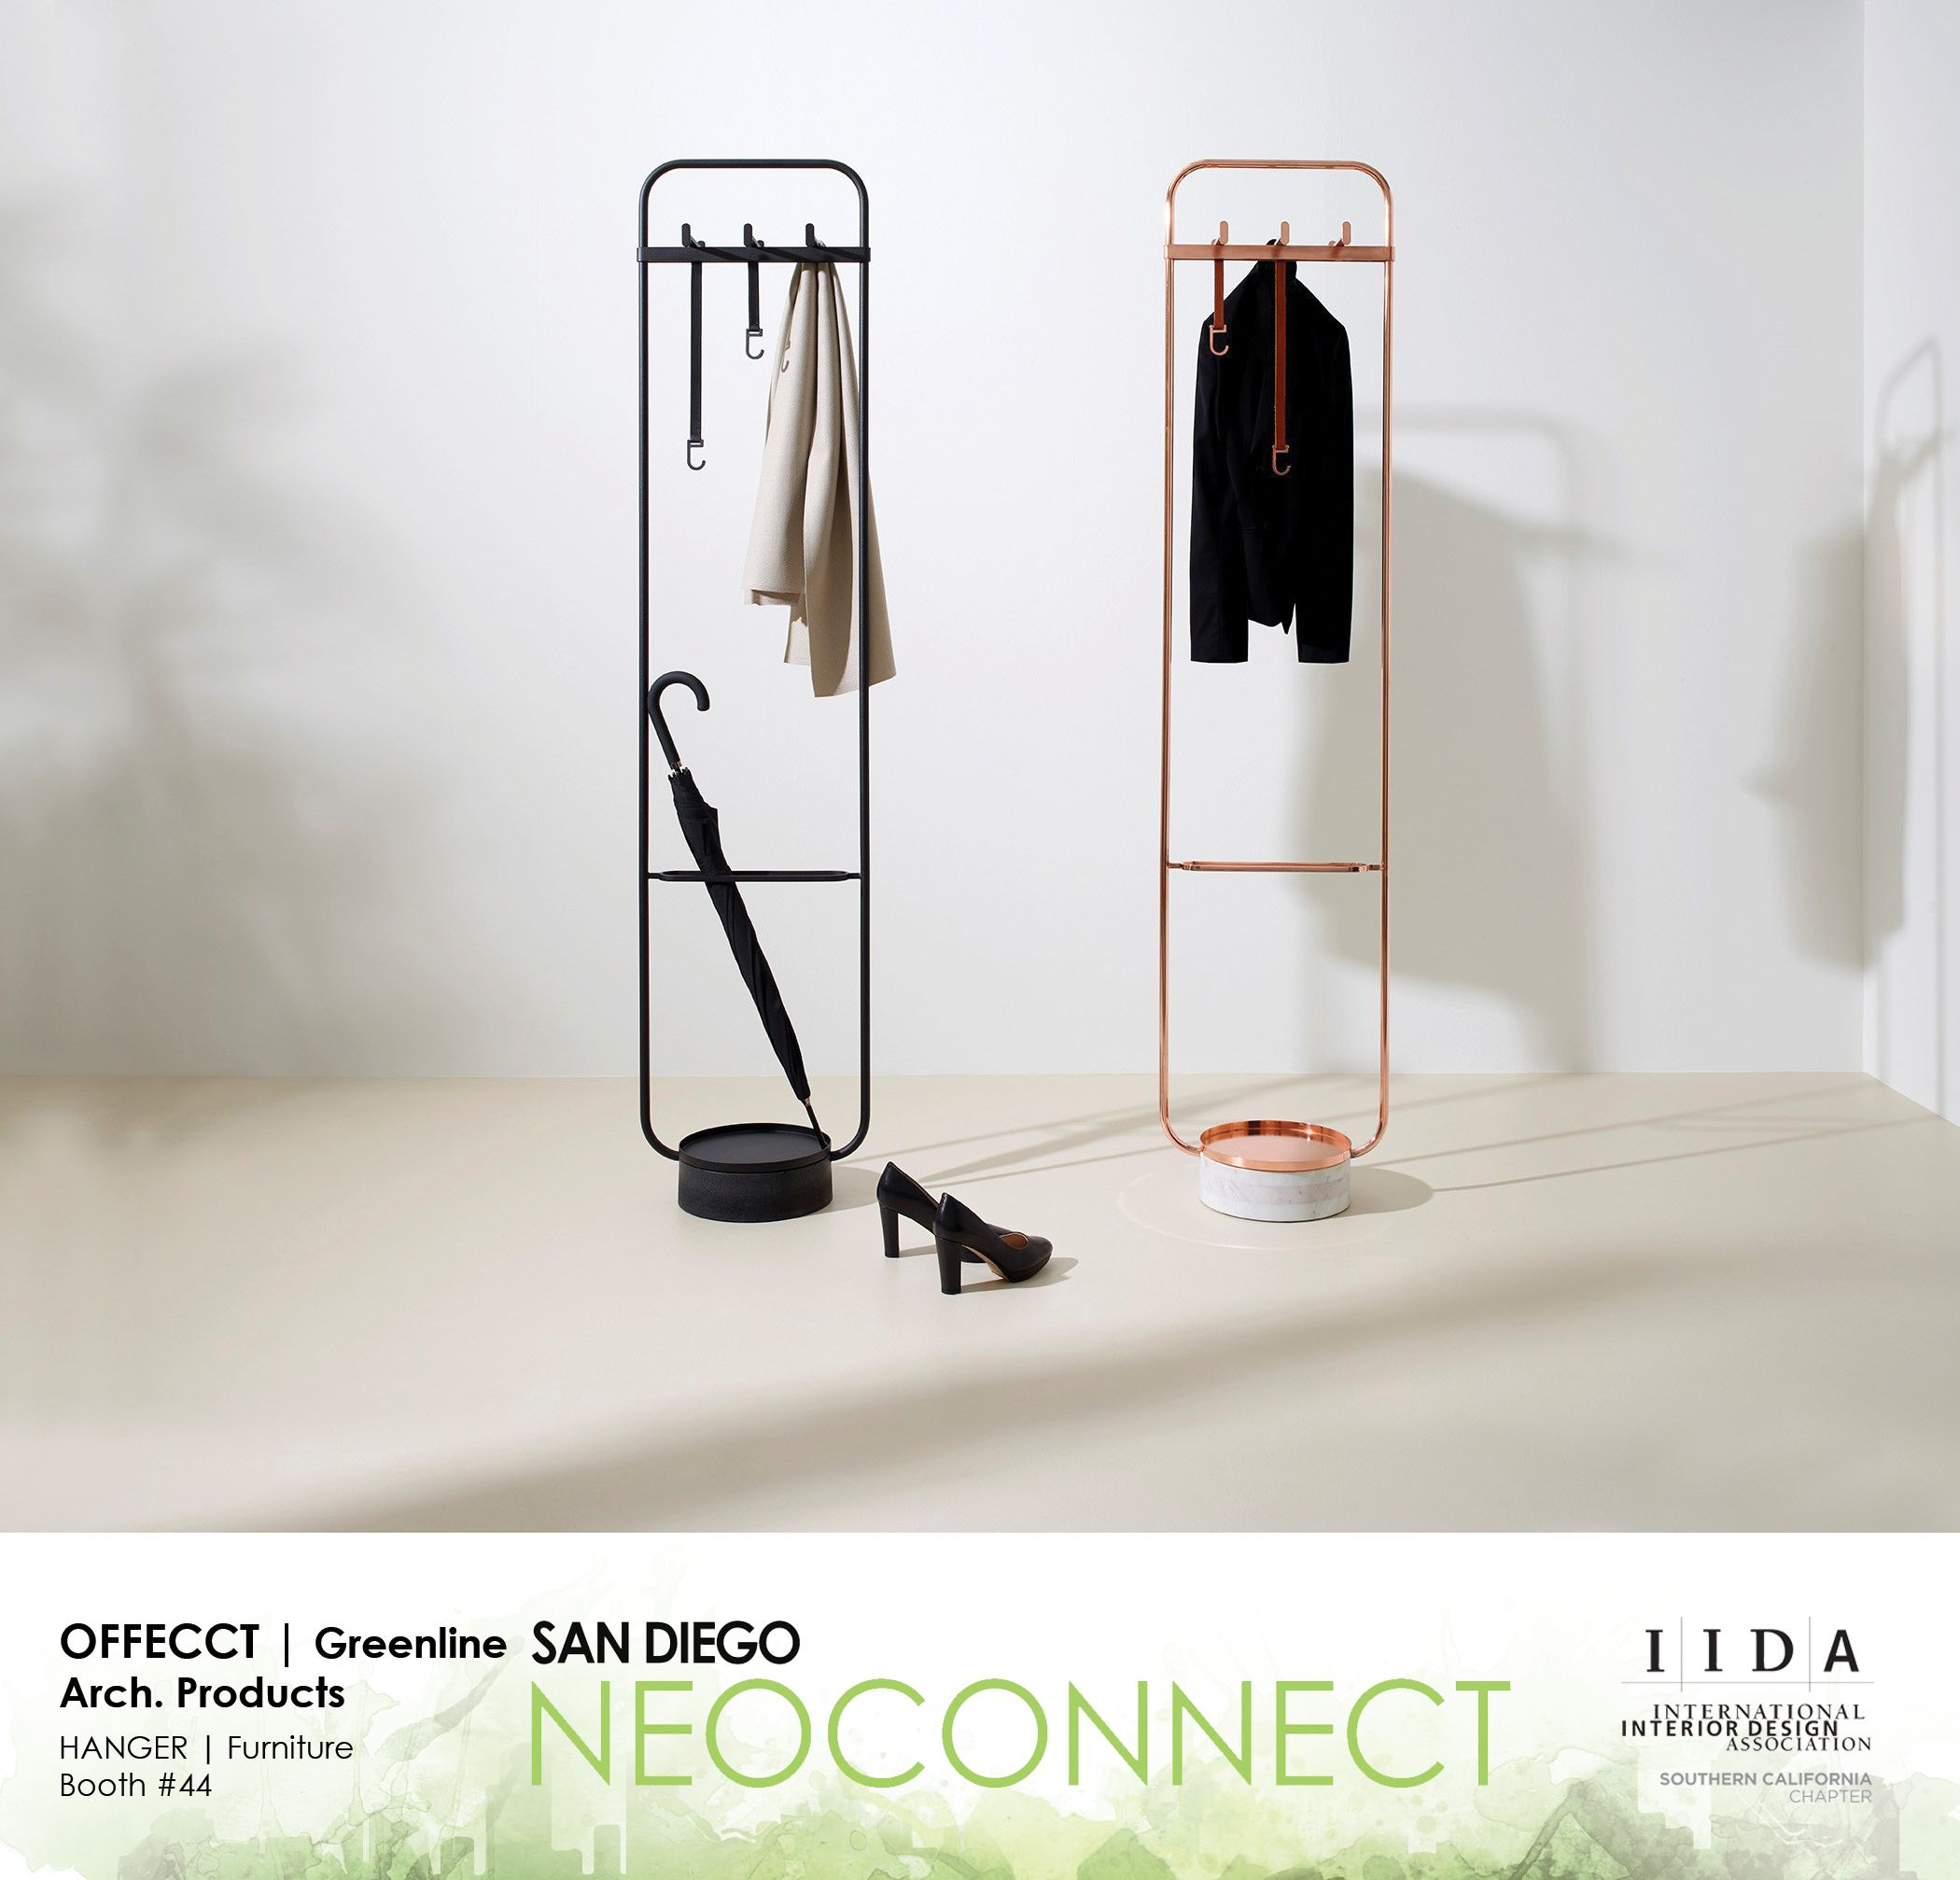 Offecct greenline arch products booth hanger furniture